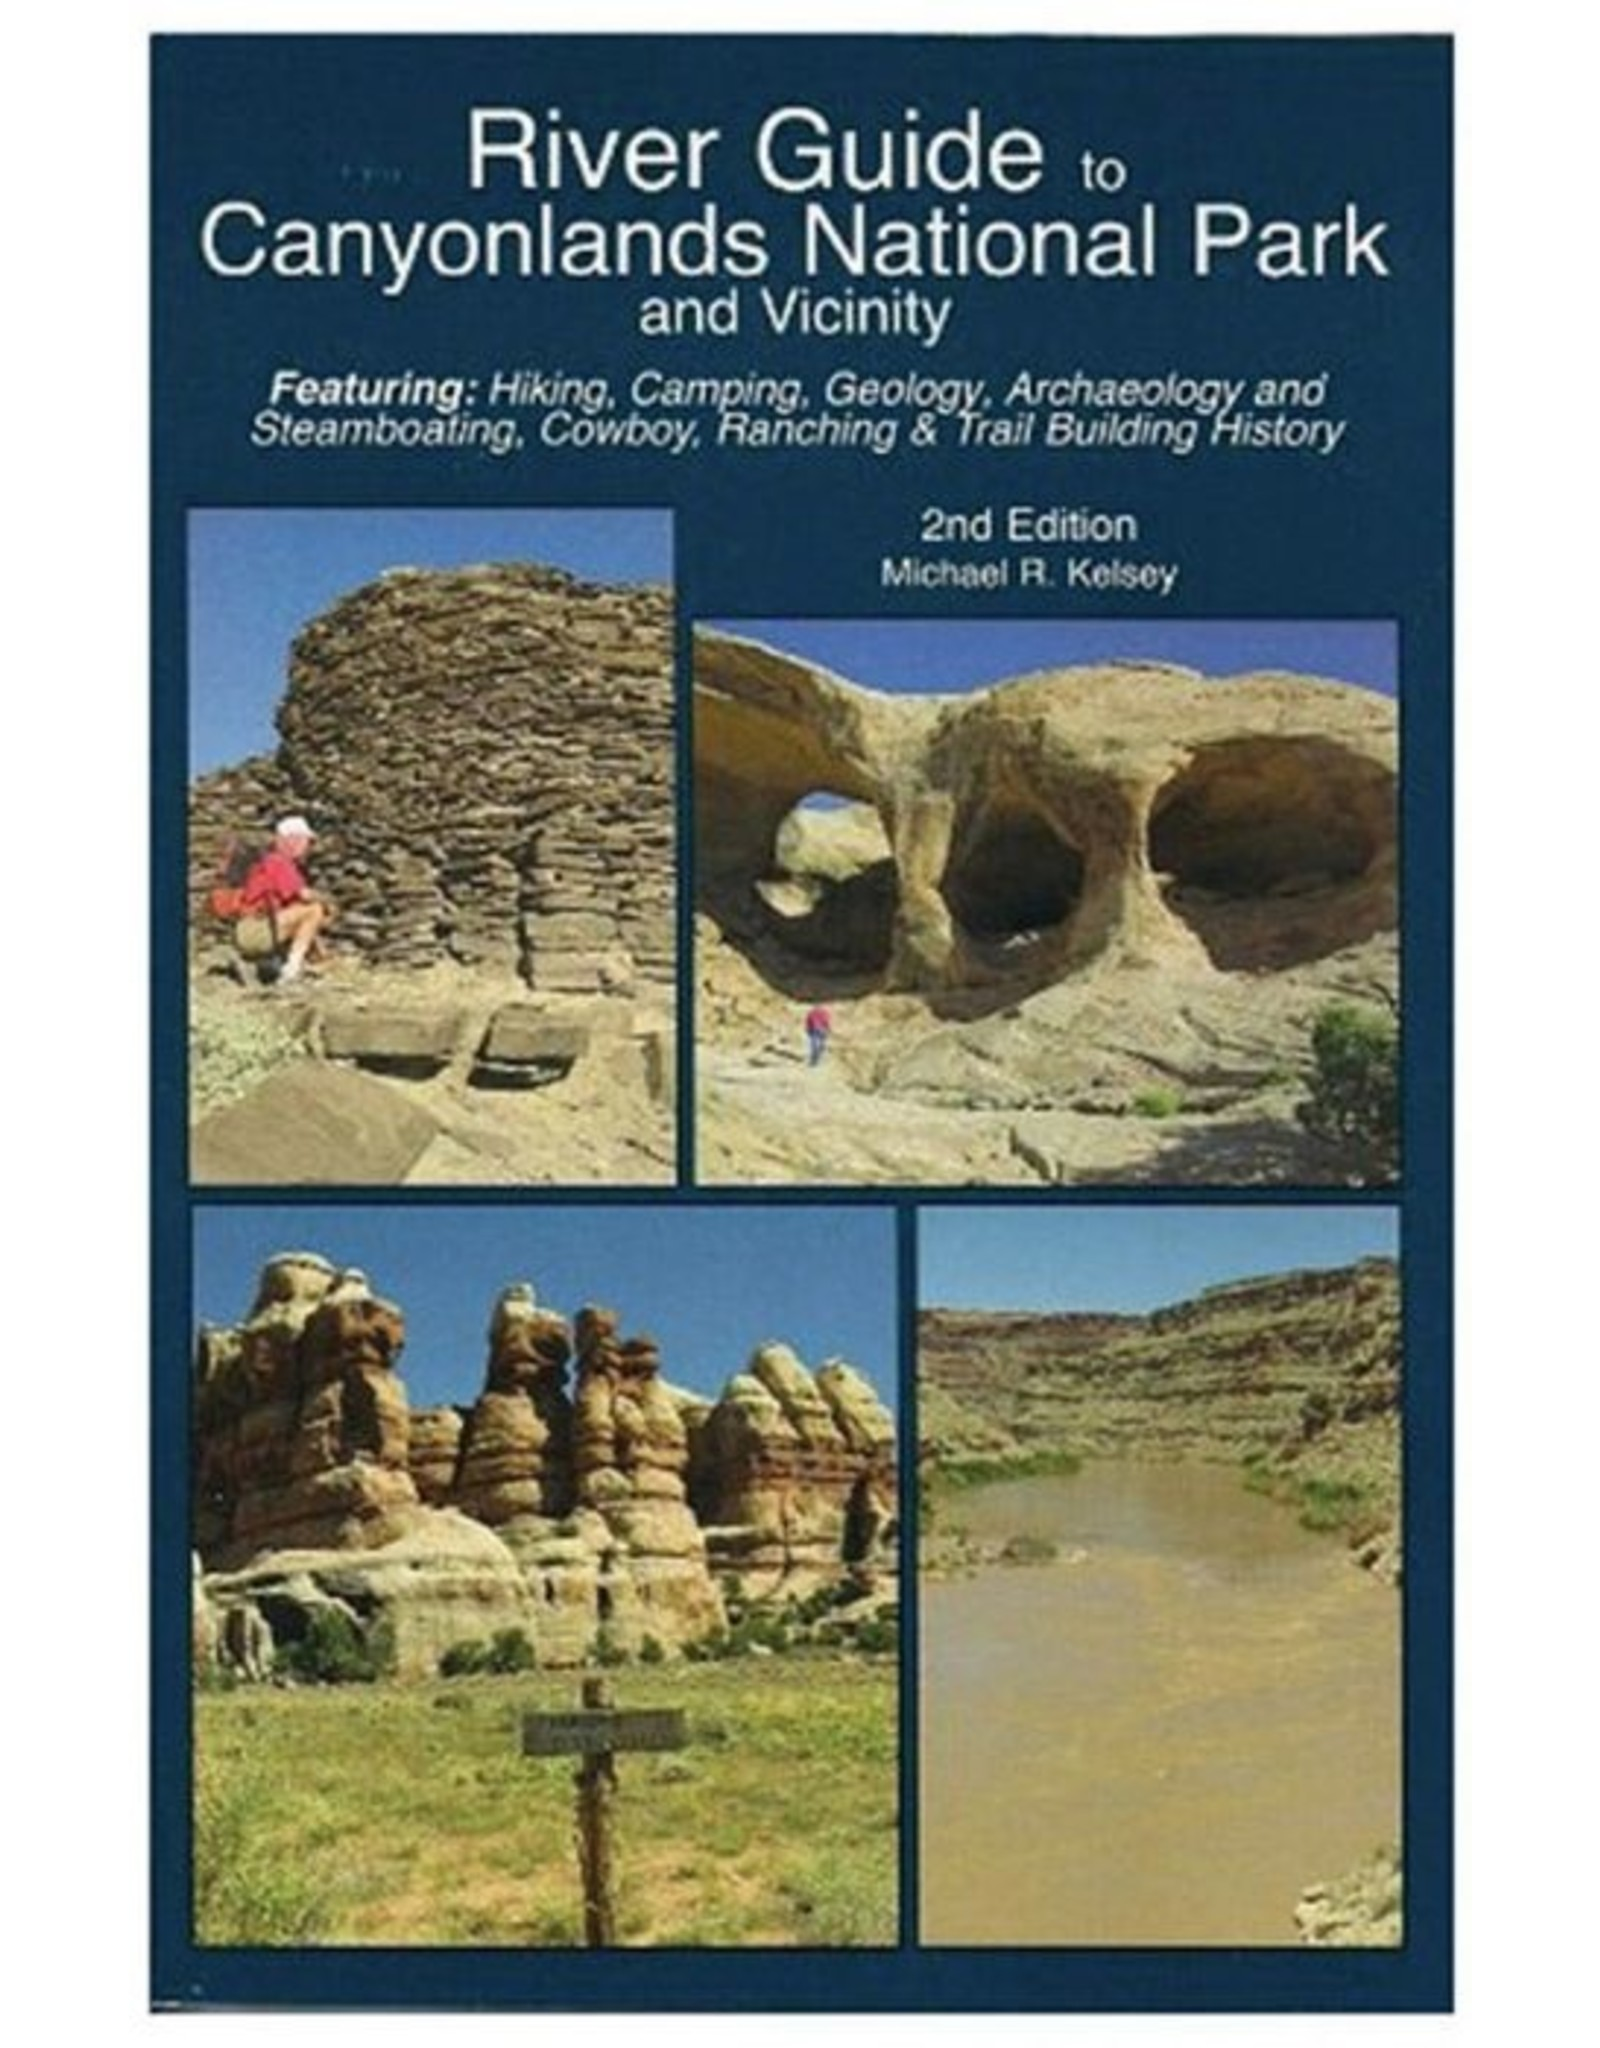 LIBERTY MOUNTAIN RIVER GUIDE TO CANYONLANDS NATIONAL PARK 2ND EDITION